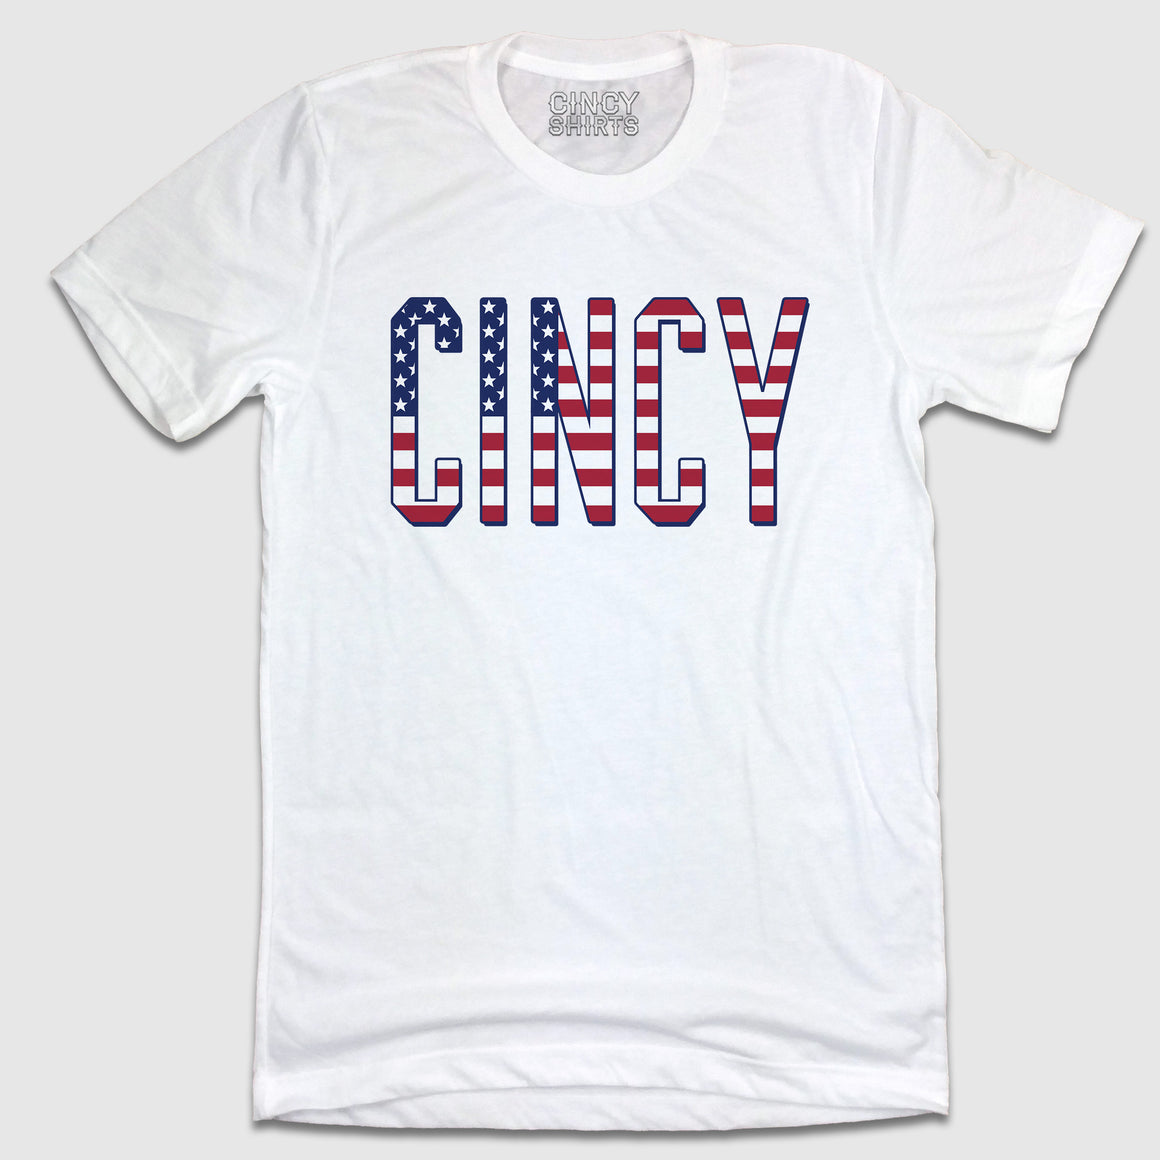 Red, White & Blue CINCY - Tees - Cincy Shirts